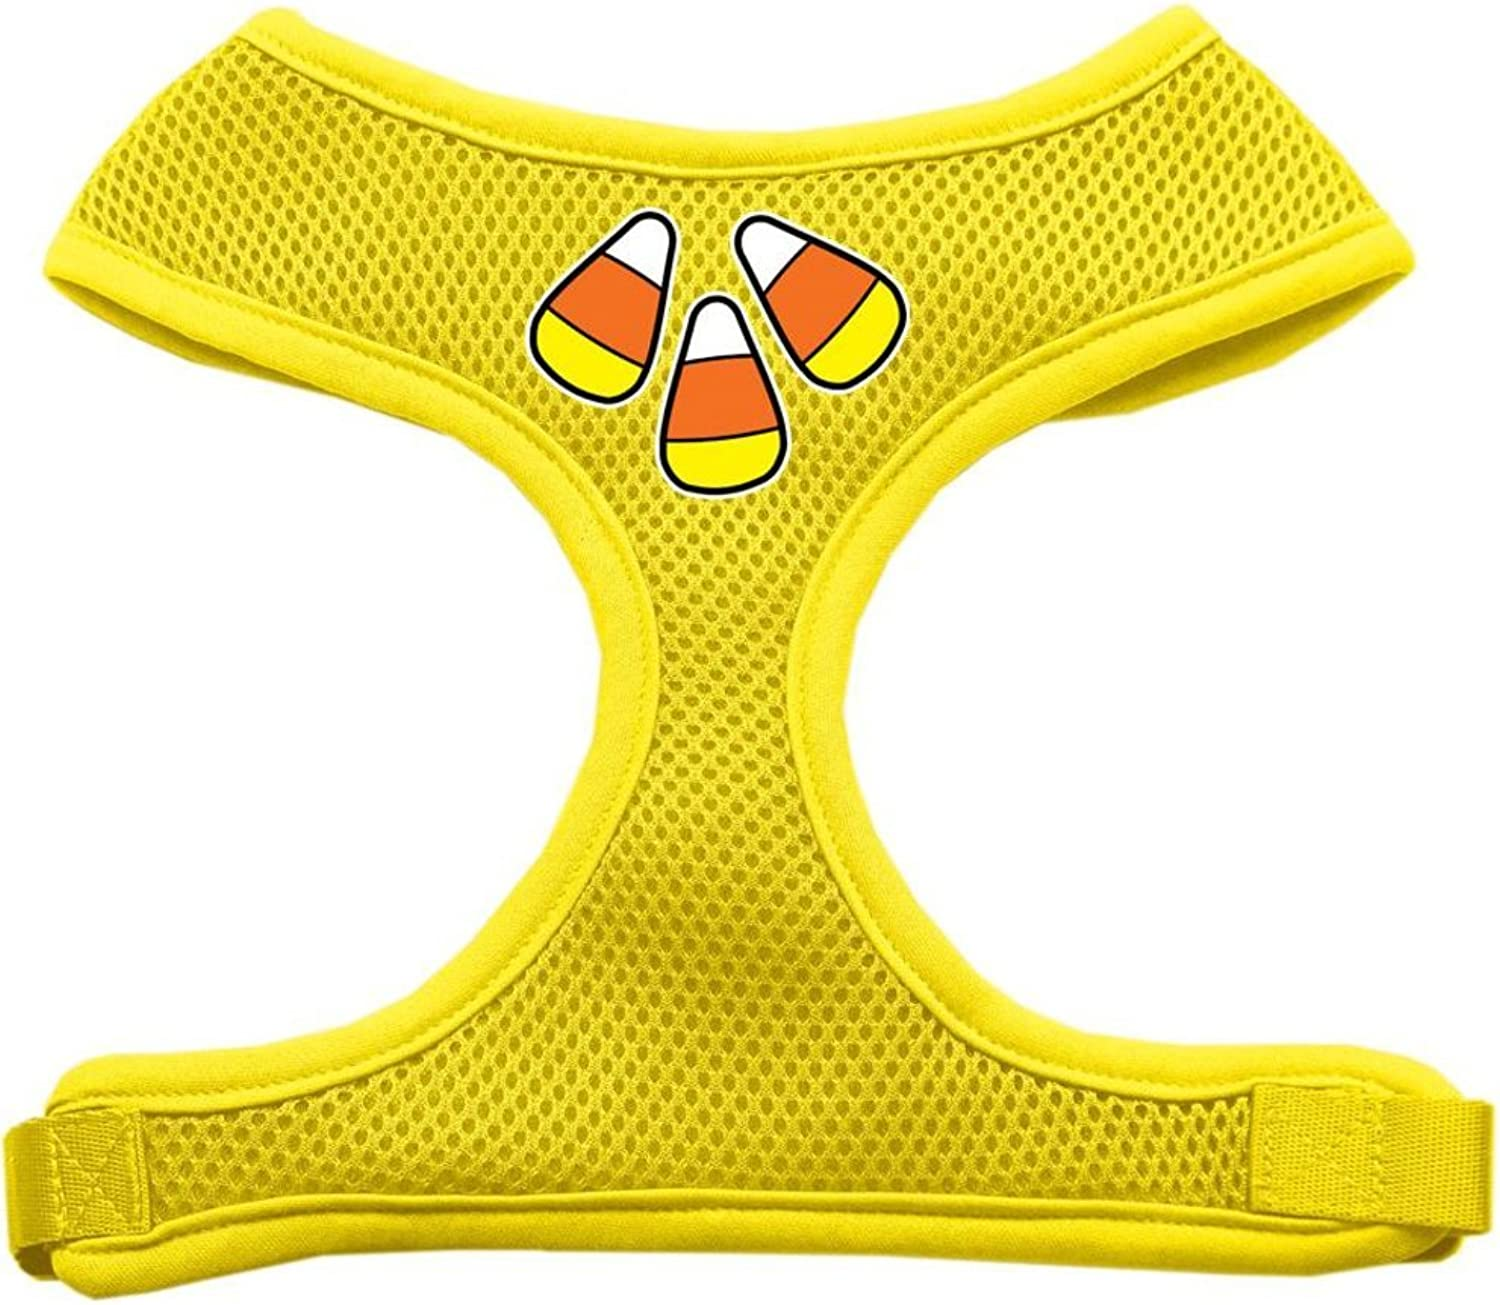 Mirage Pet Products Candy Corn Design Soft Mesh Dog Harnesses, XLarge, Yellow